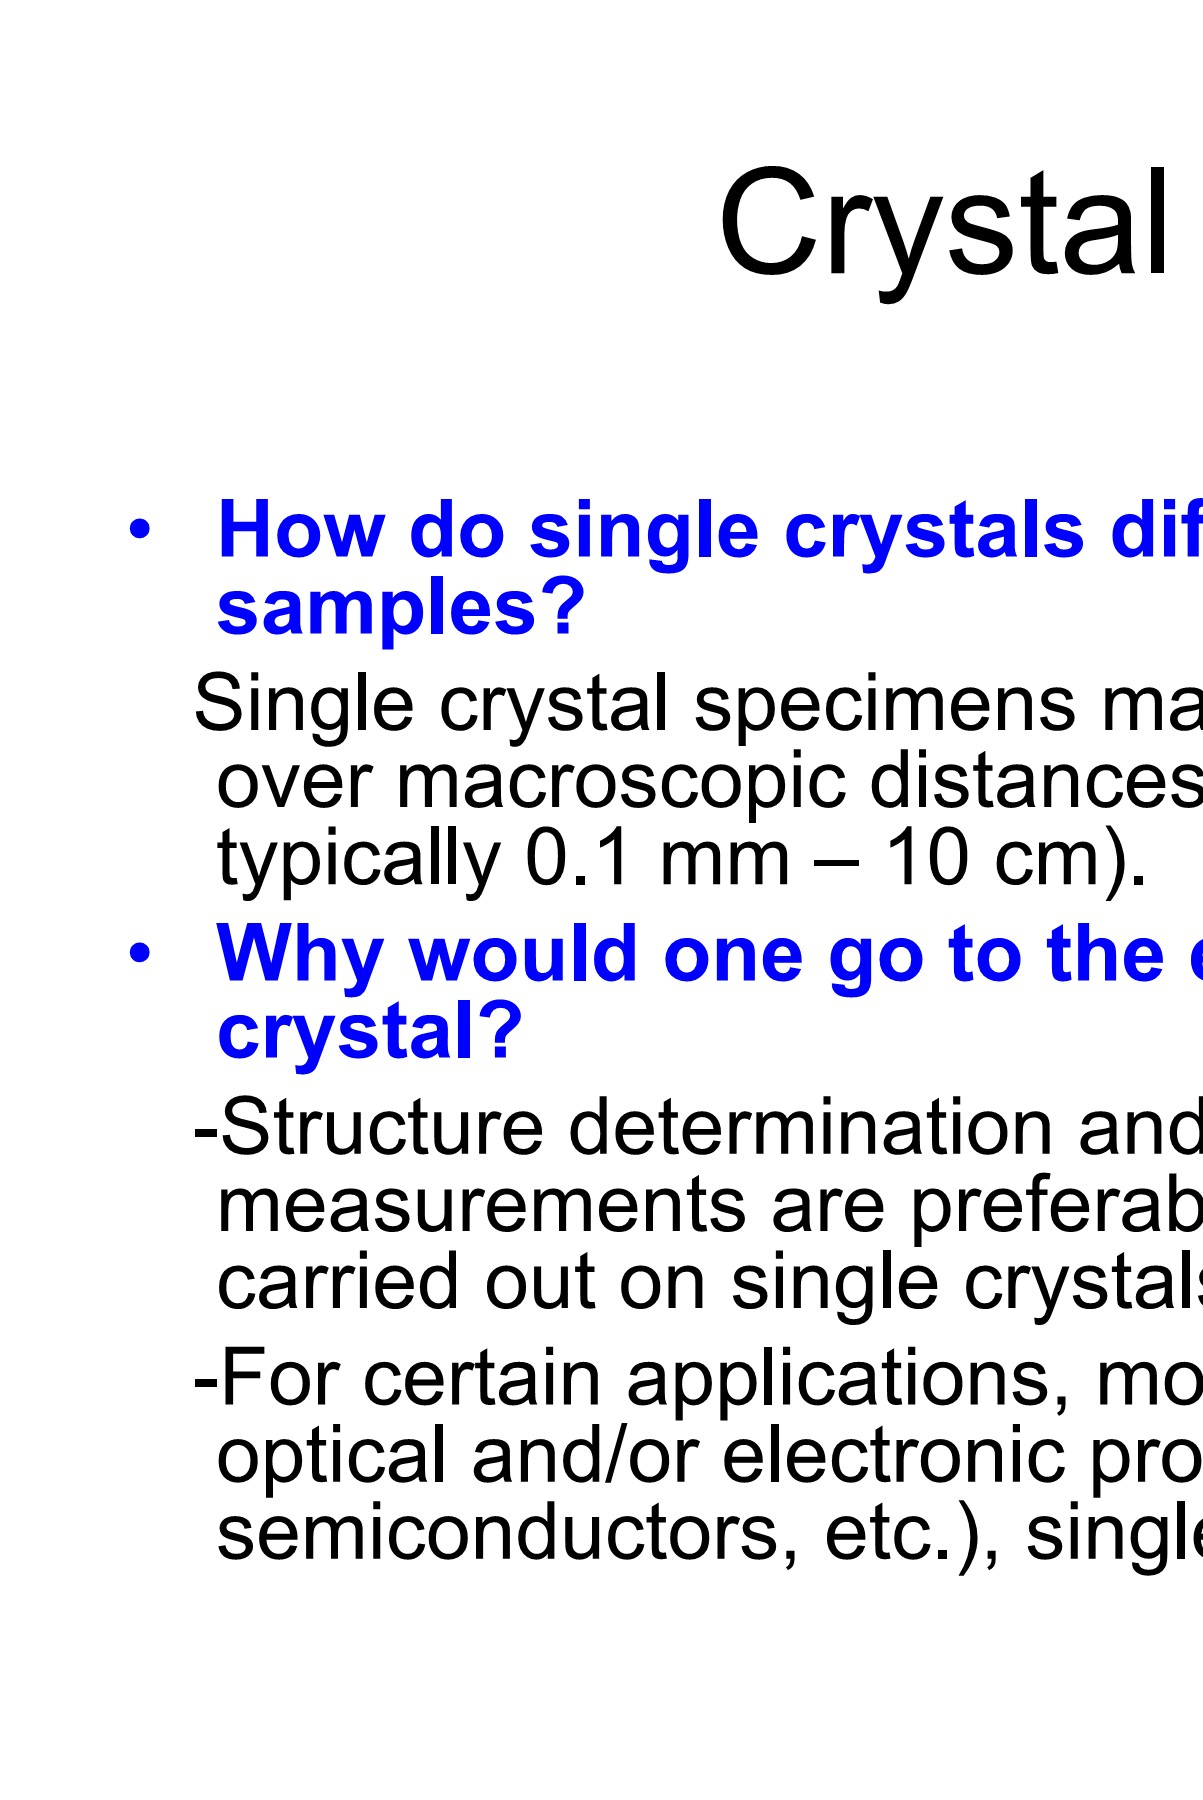 How do single crystals differ from polycrystalline samples